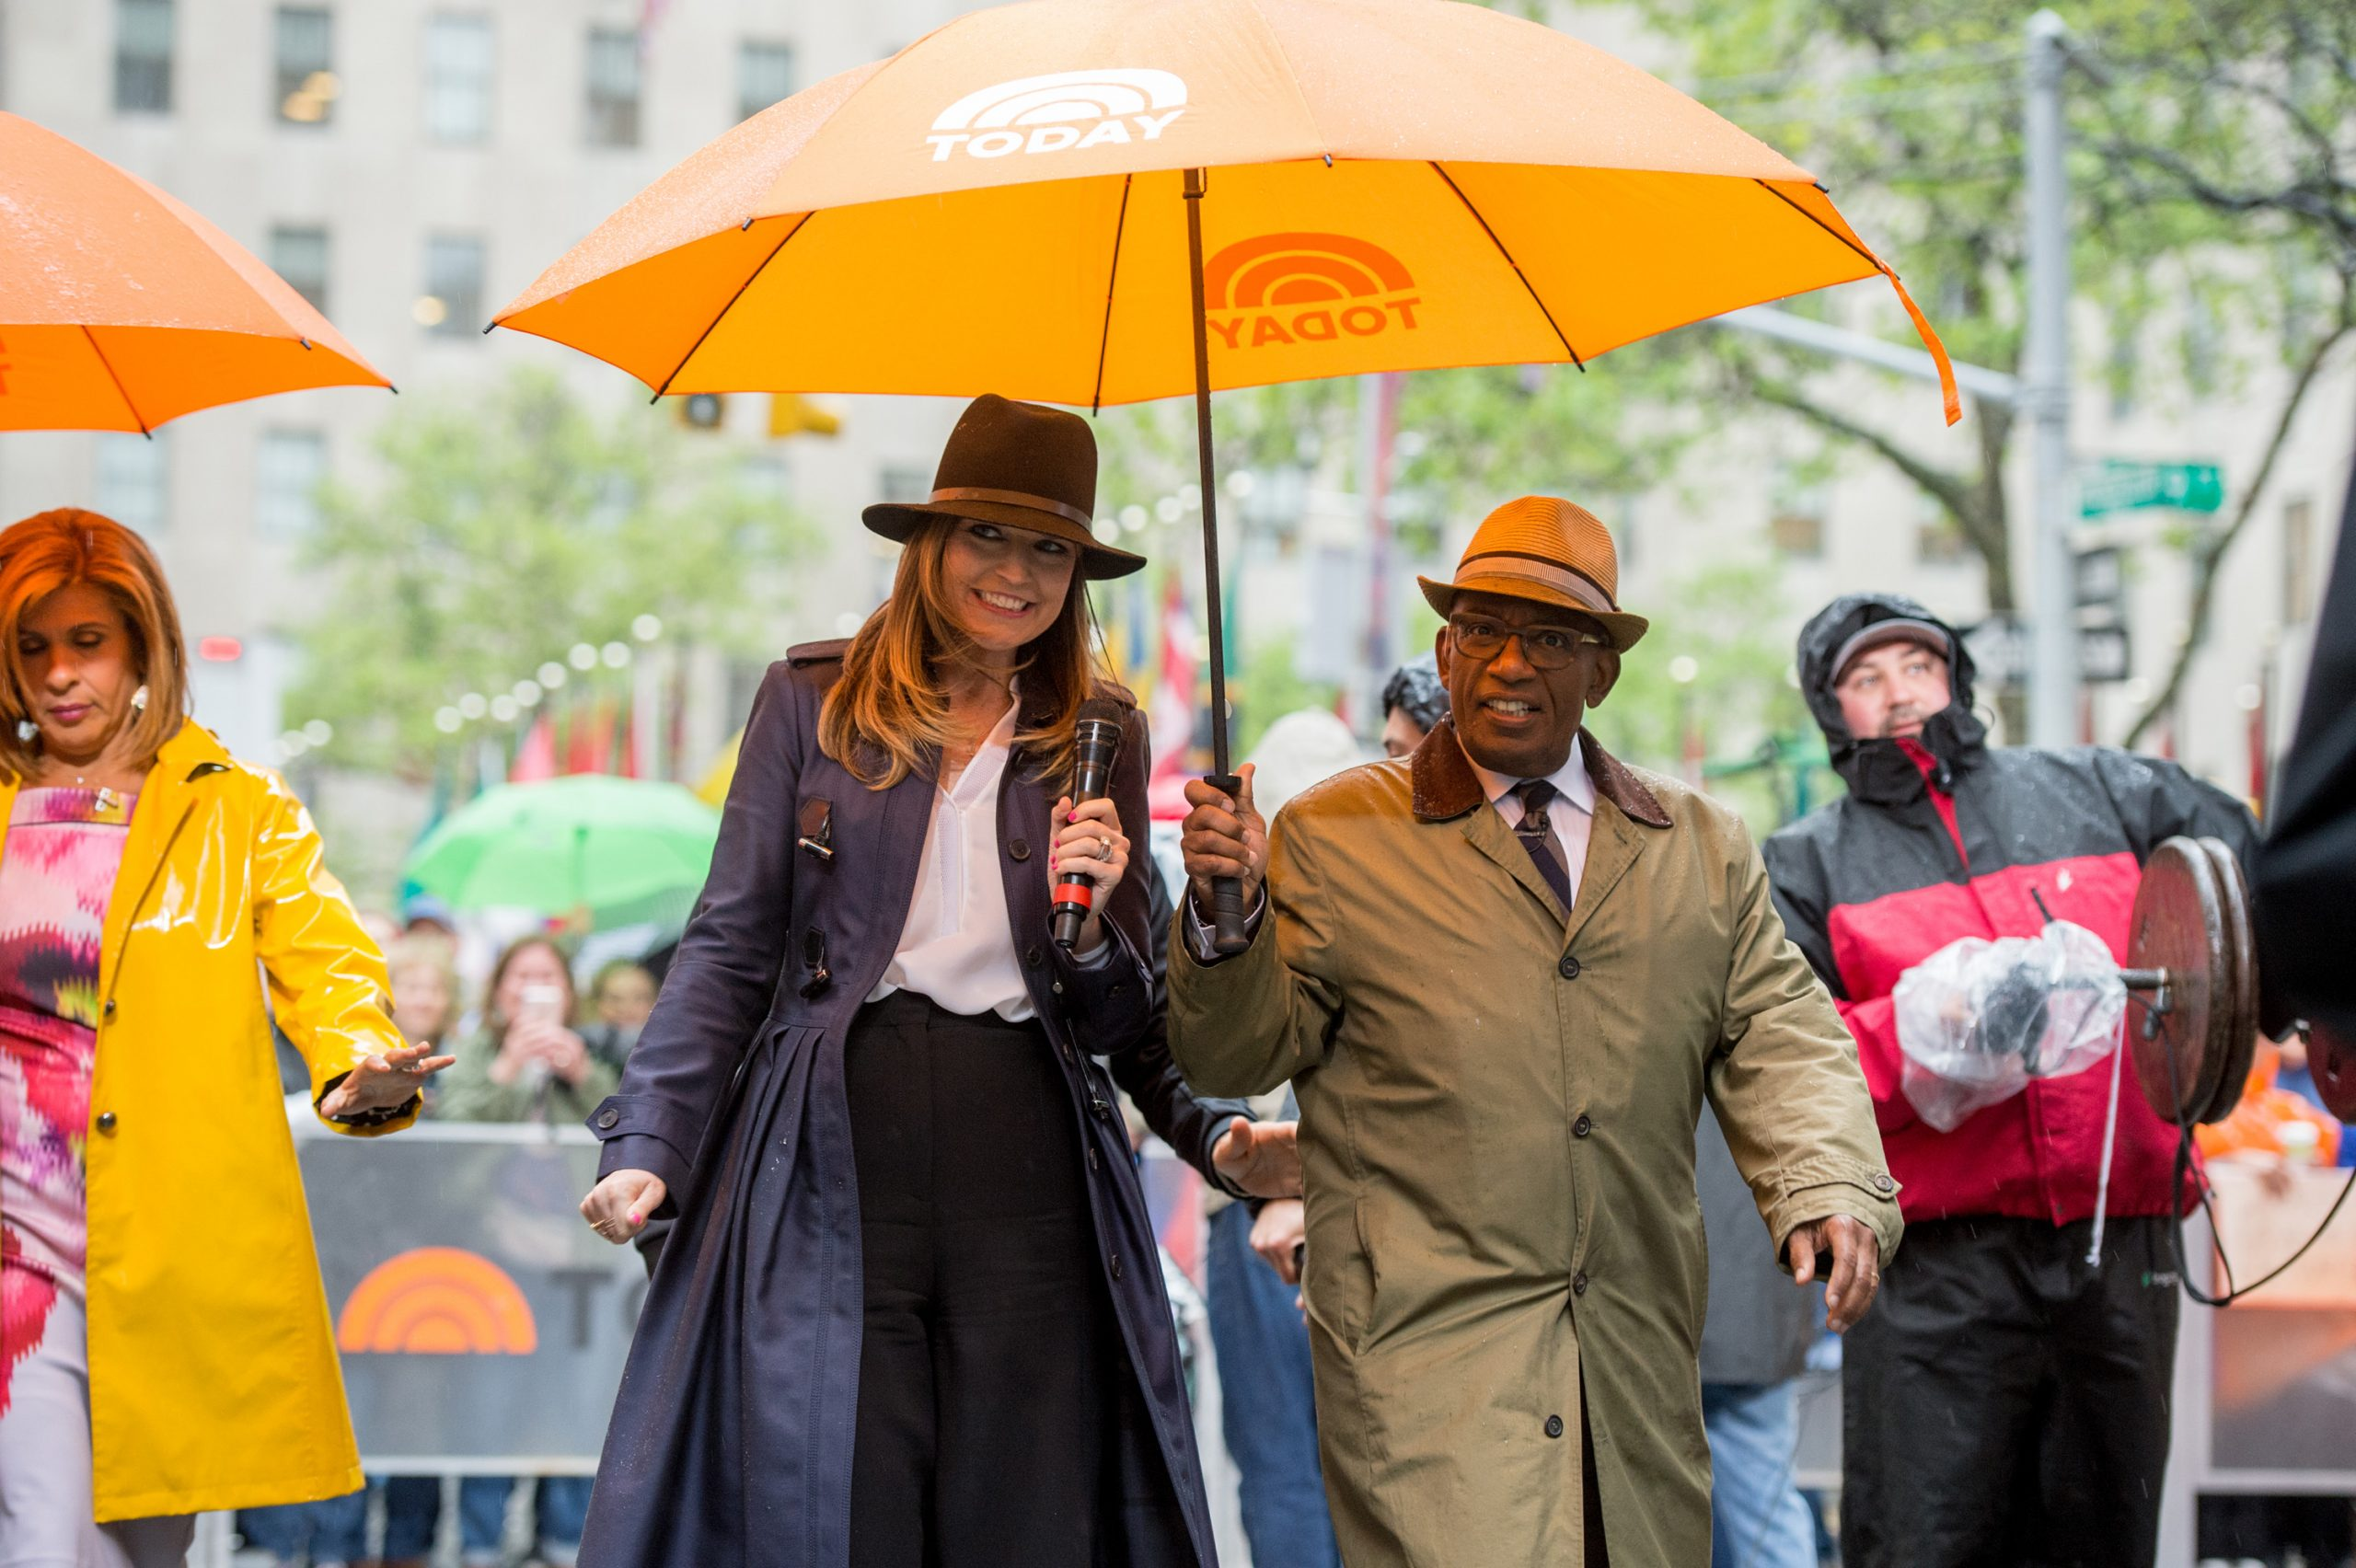 Savannah Guthrie wears a hat and shares a yellow umbrella with her 'Today' co-host Al Roker, also donning a hat.